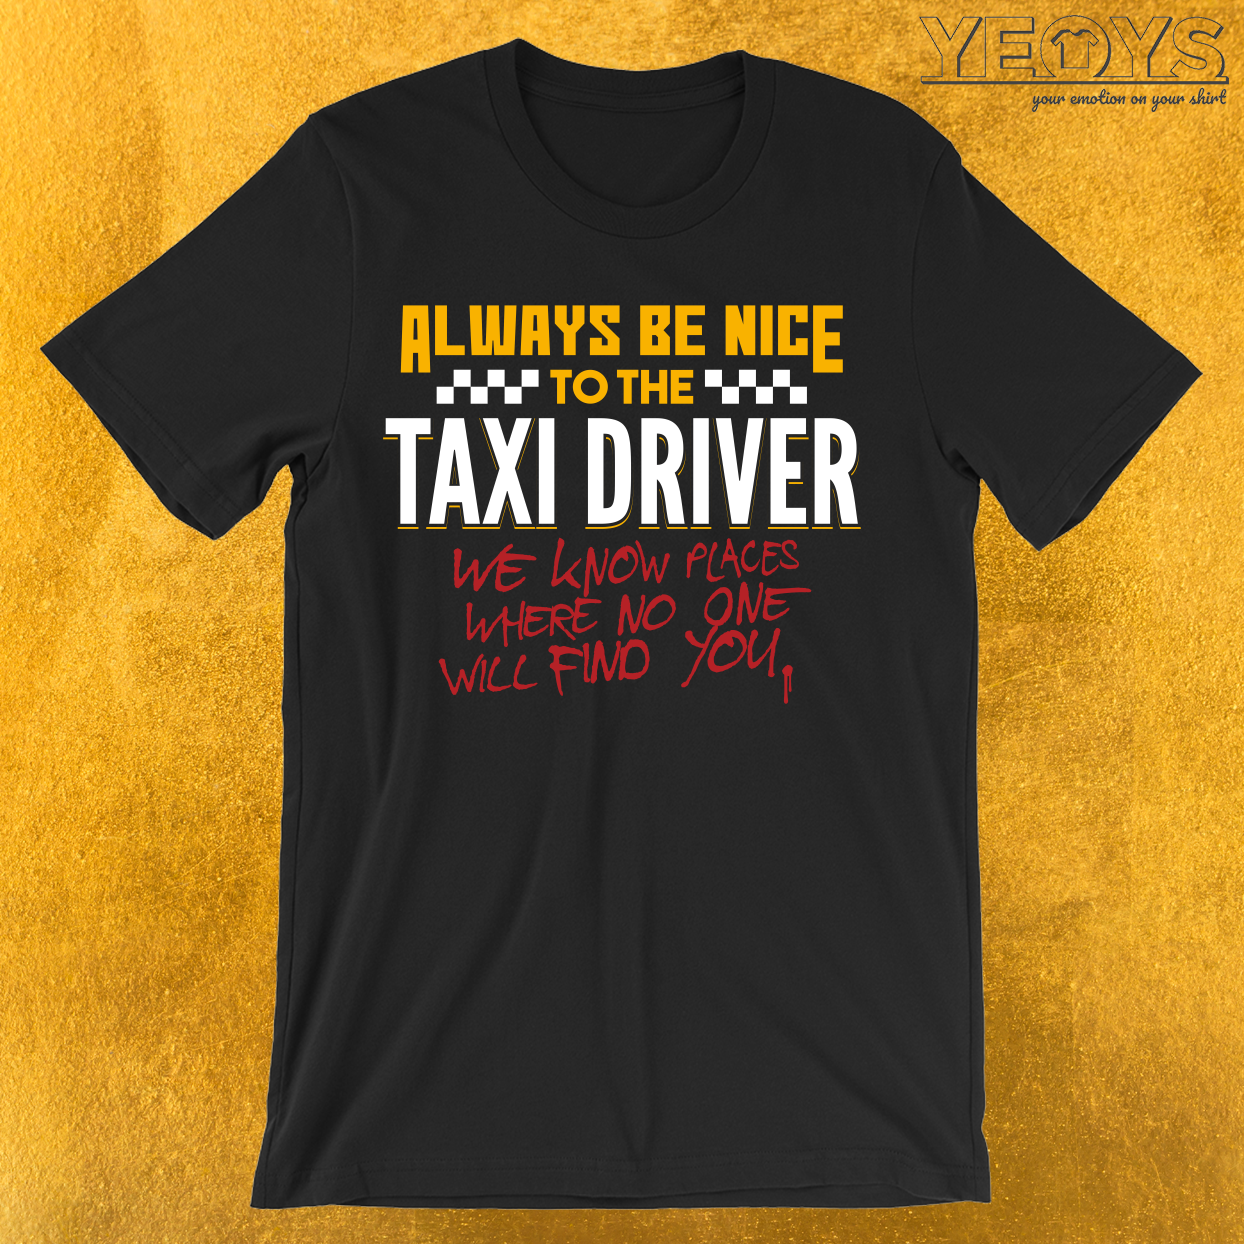 Always Be Nice To The Taxi Driver T-Shirt